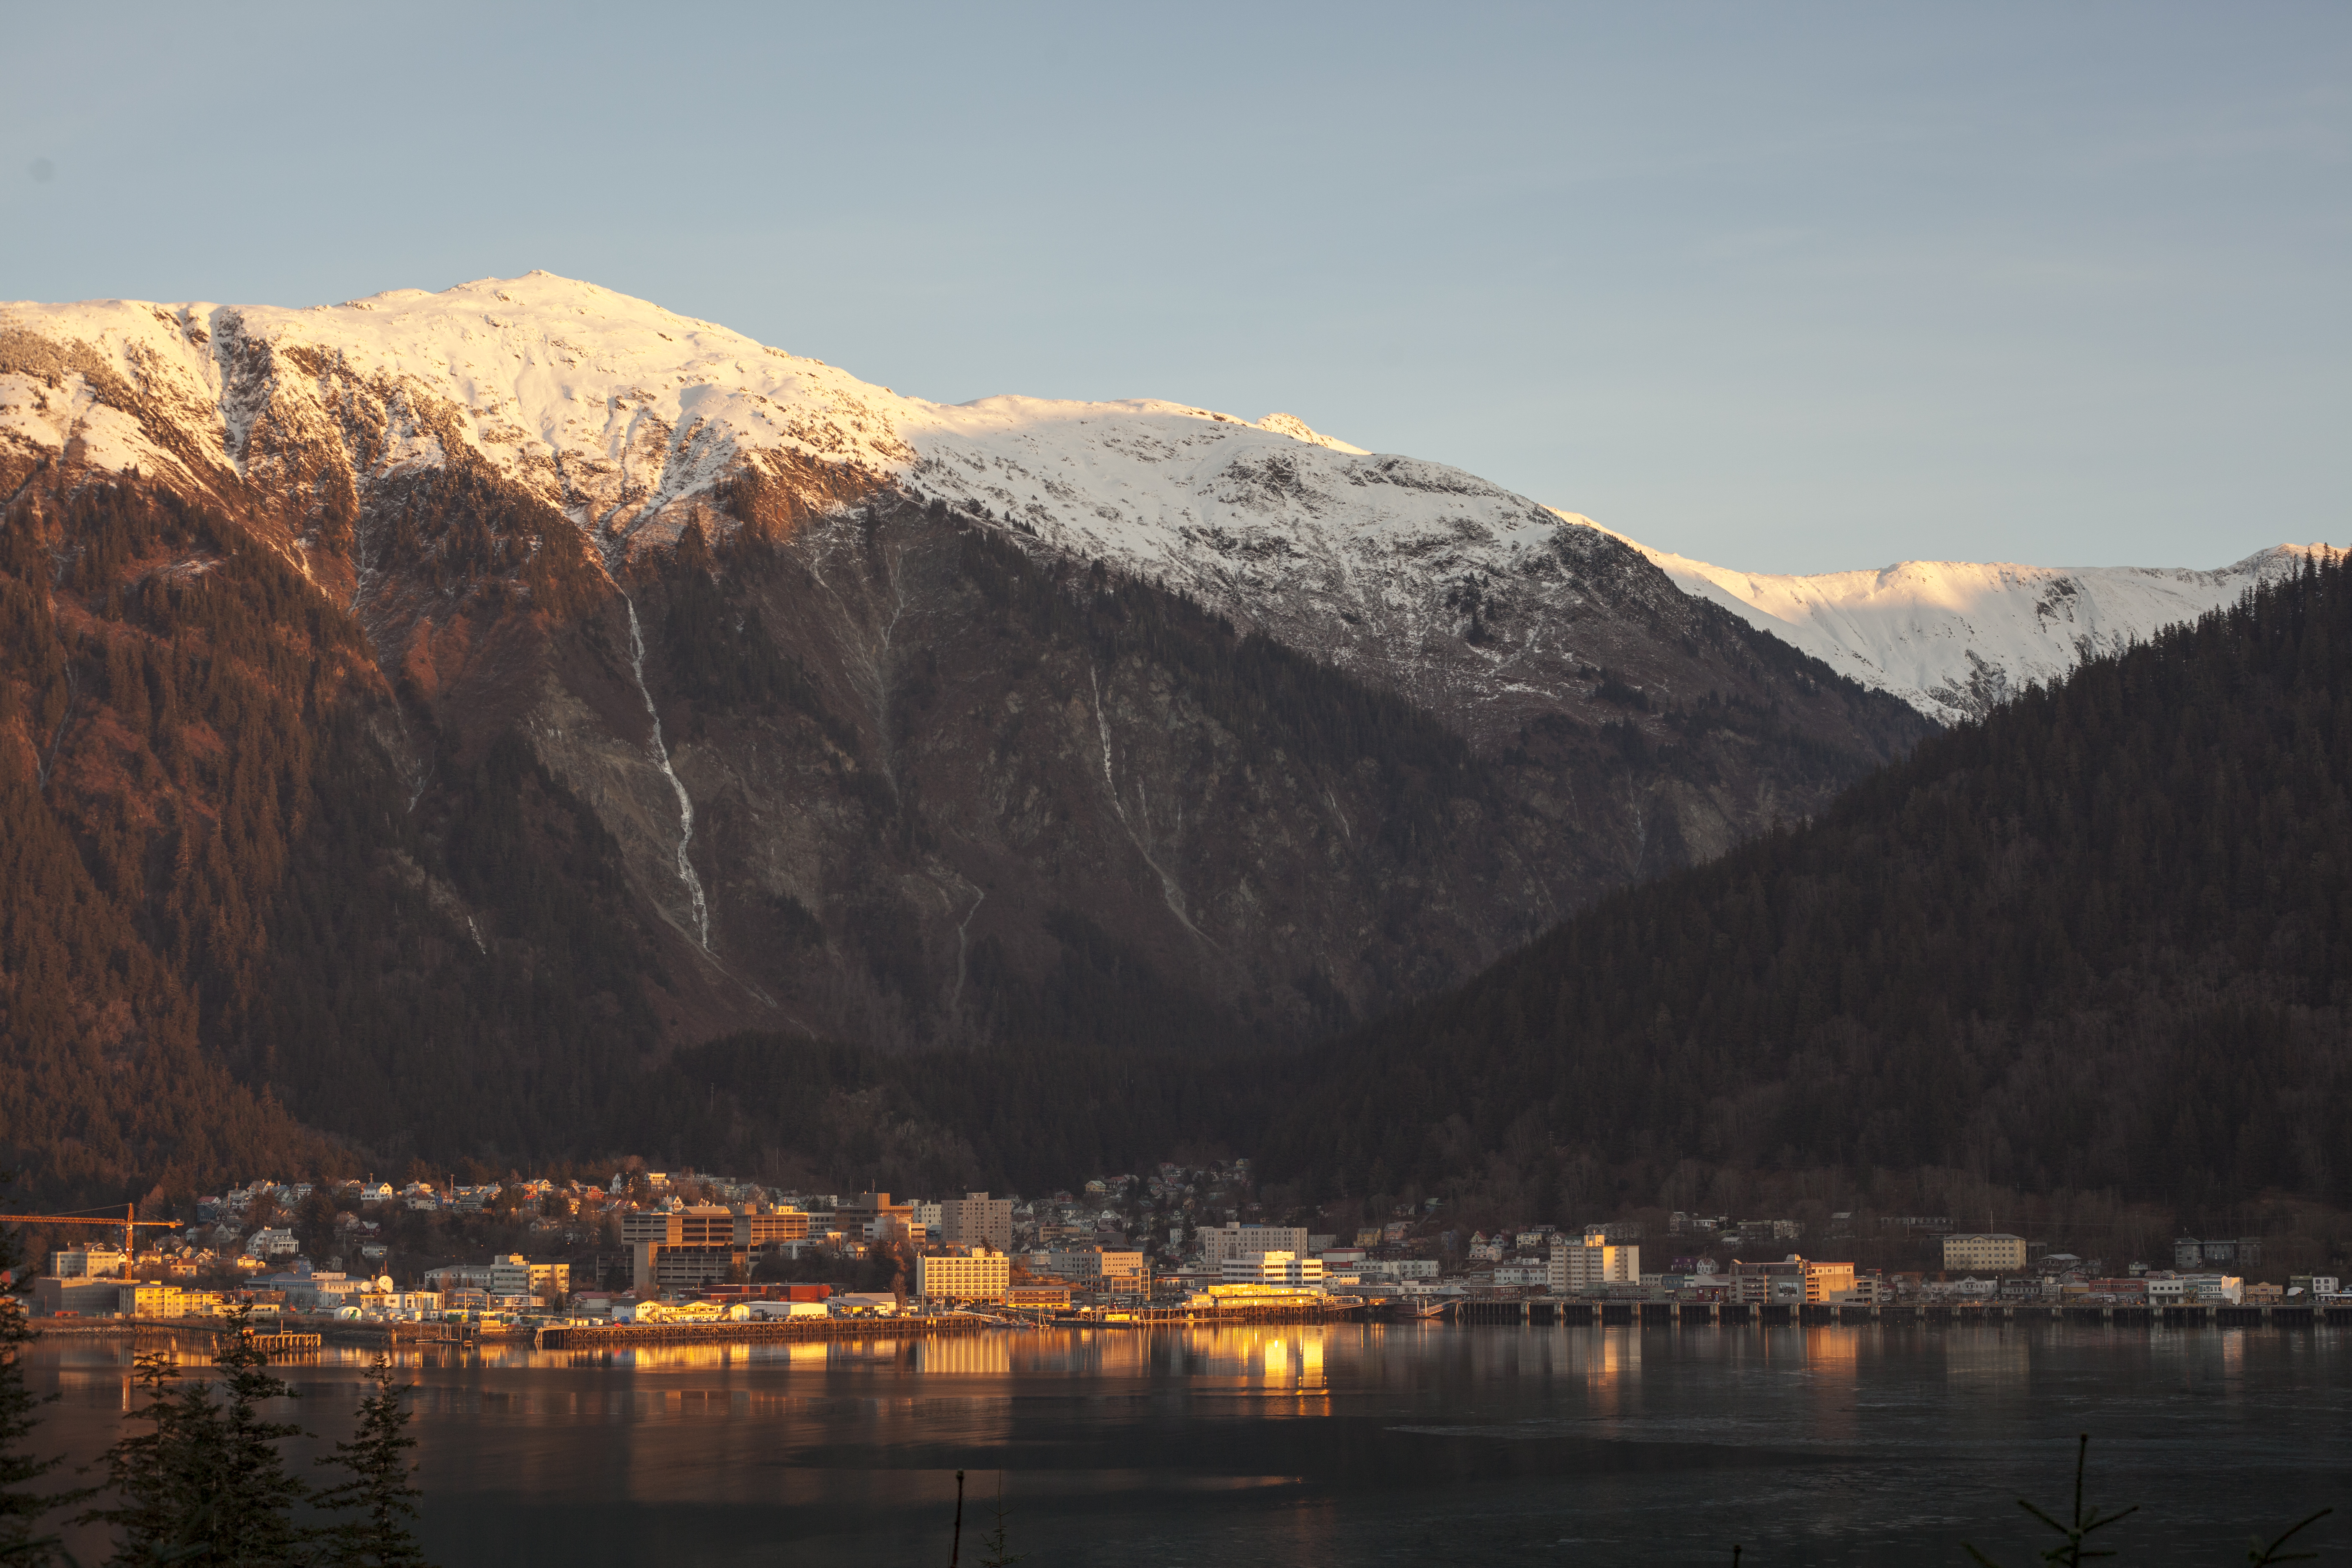 Gorgeous views from downtown Juneau